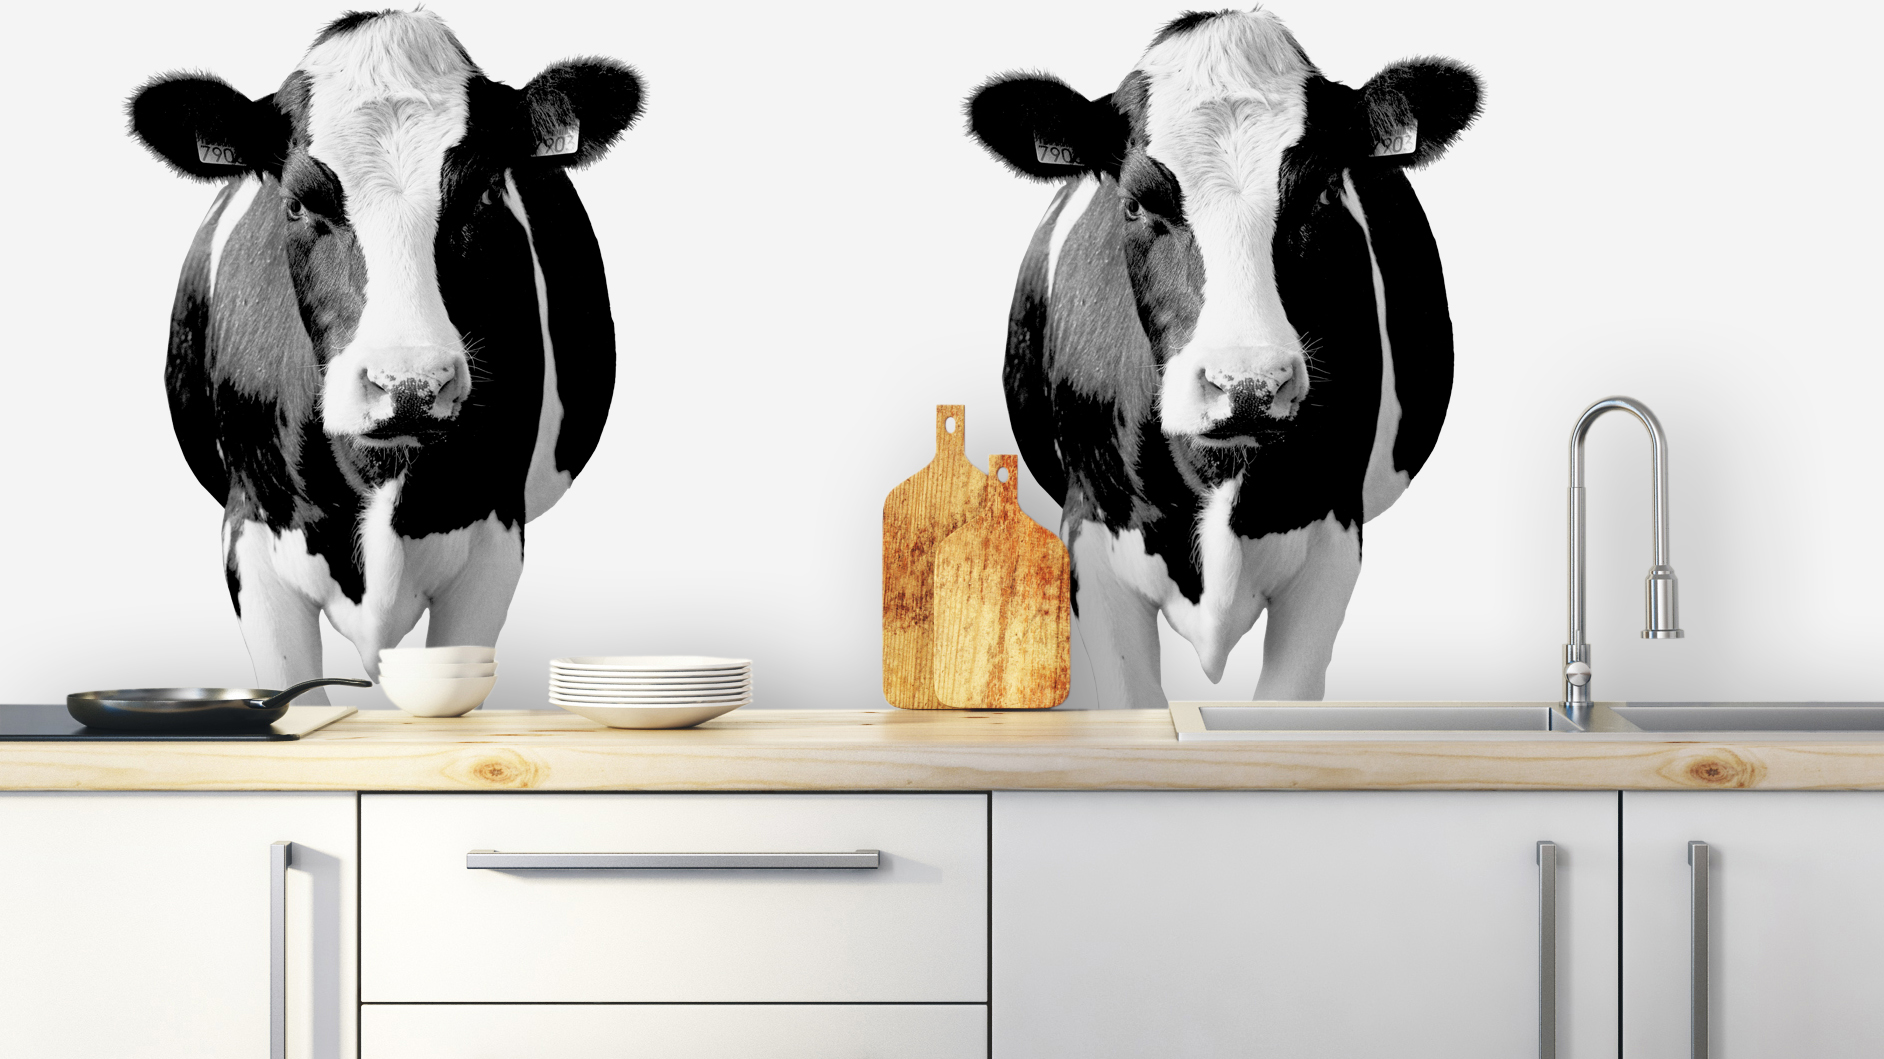 Achterwand Keuken Koeien Cows In Black And White | Pimp Your Kitchen